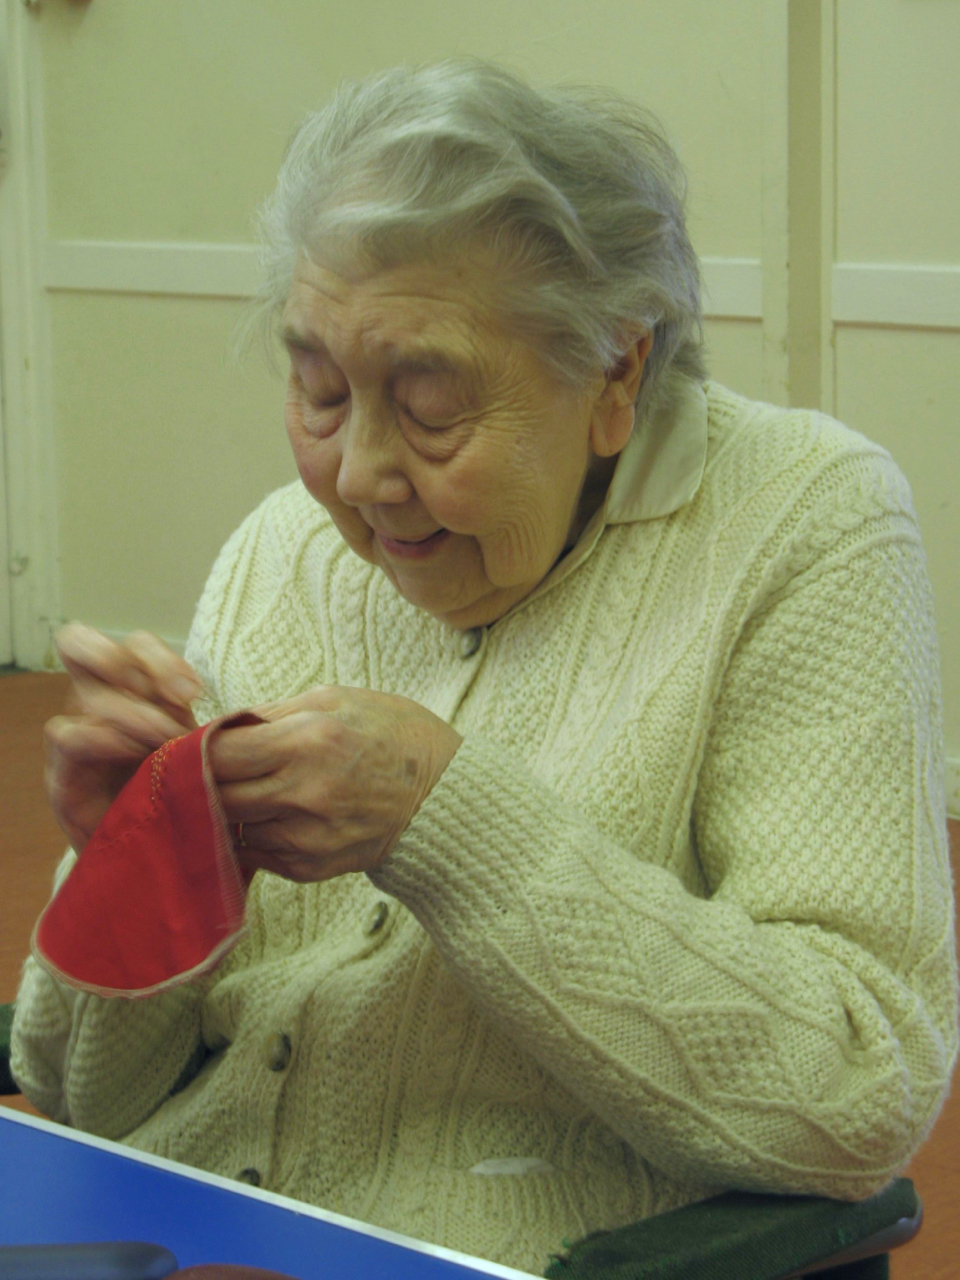 Our Elders group meets once a week to explore the borough's rich cultural heritage through arts and crafts. - Learn more